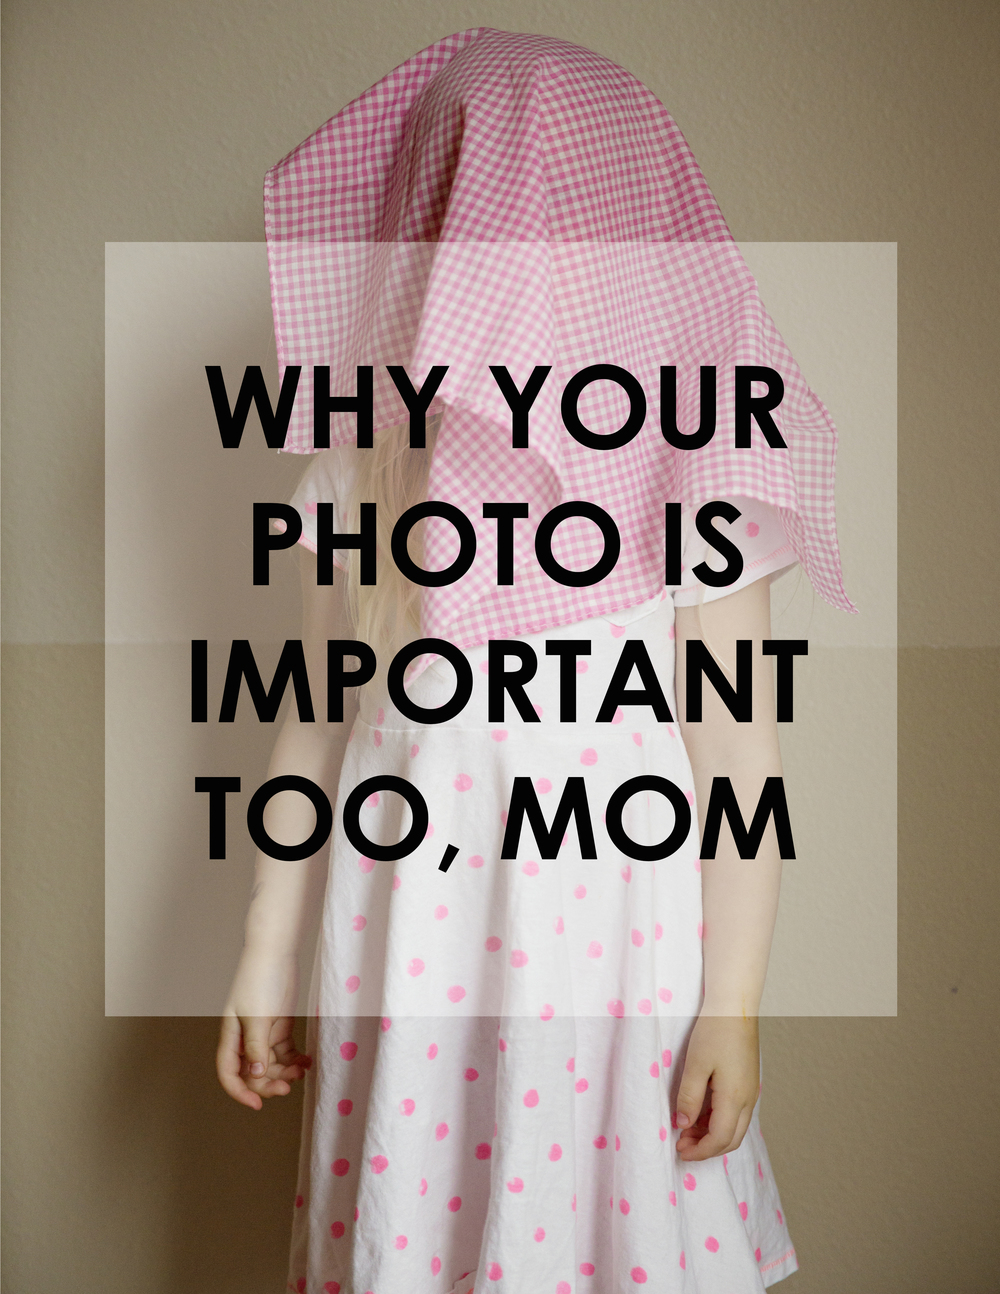 WHY YOUR PHOTO IS IMPORTANT TOO MOM